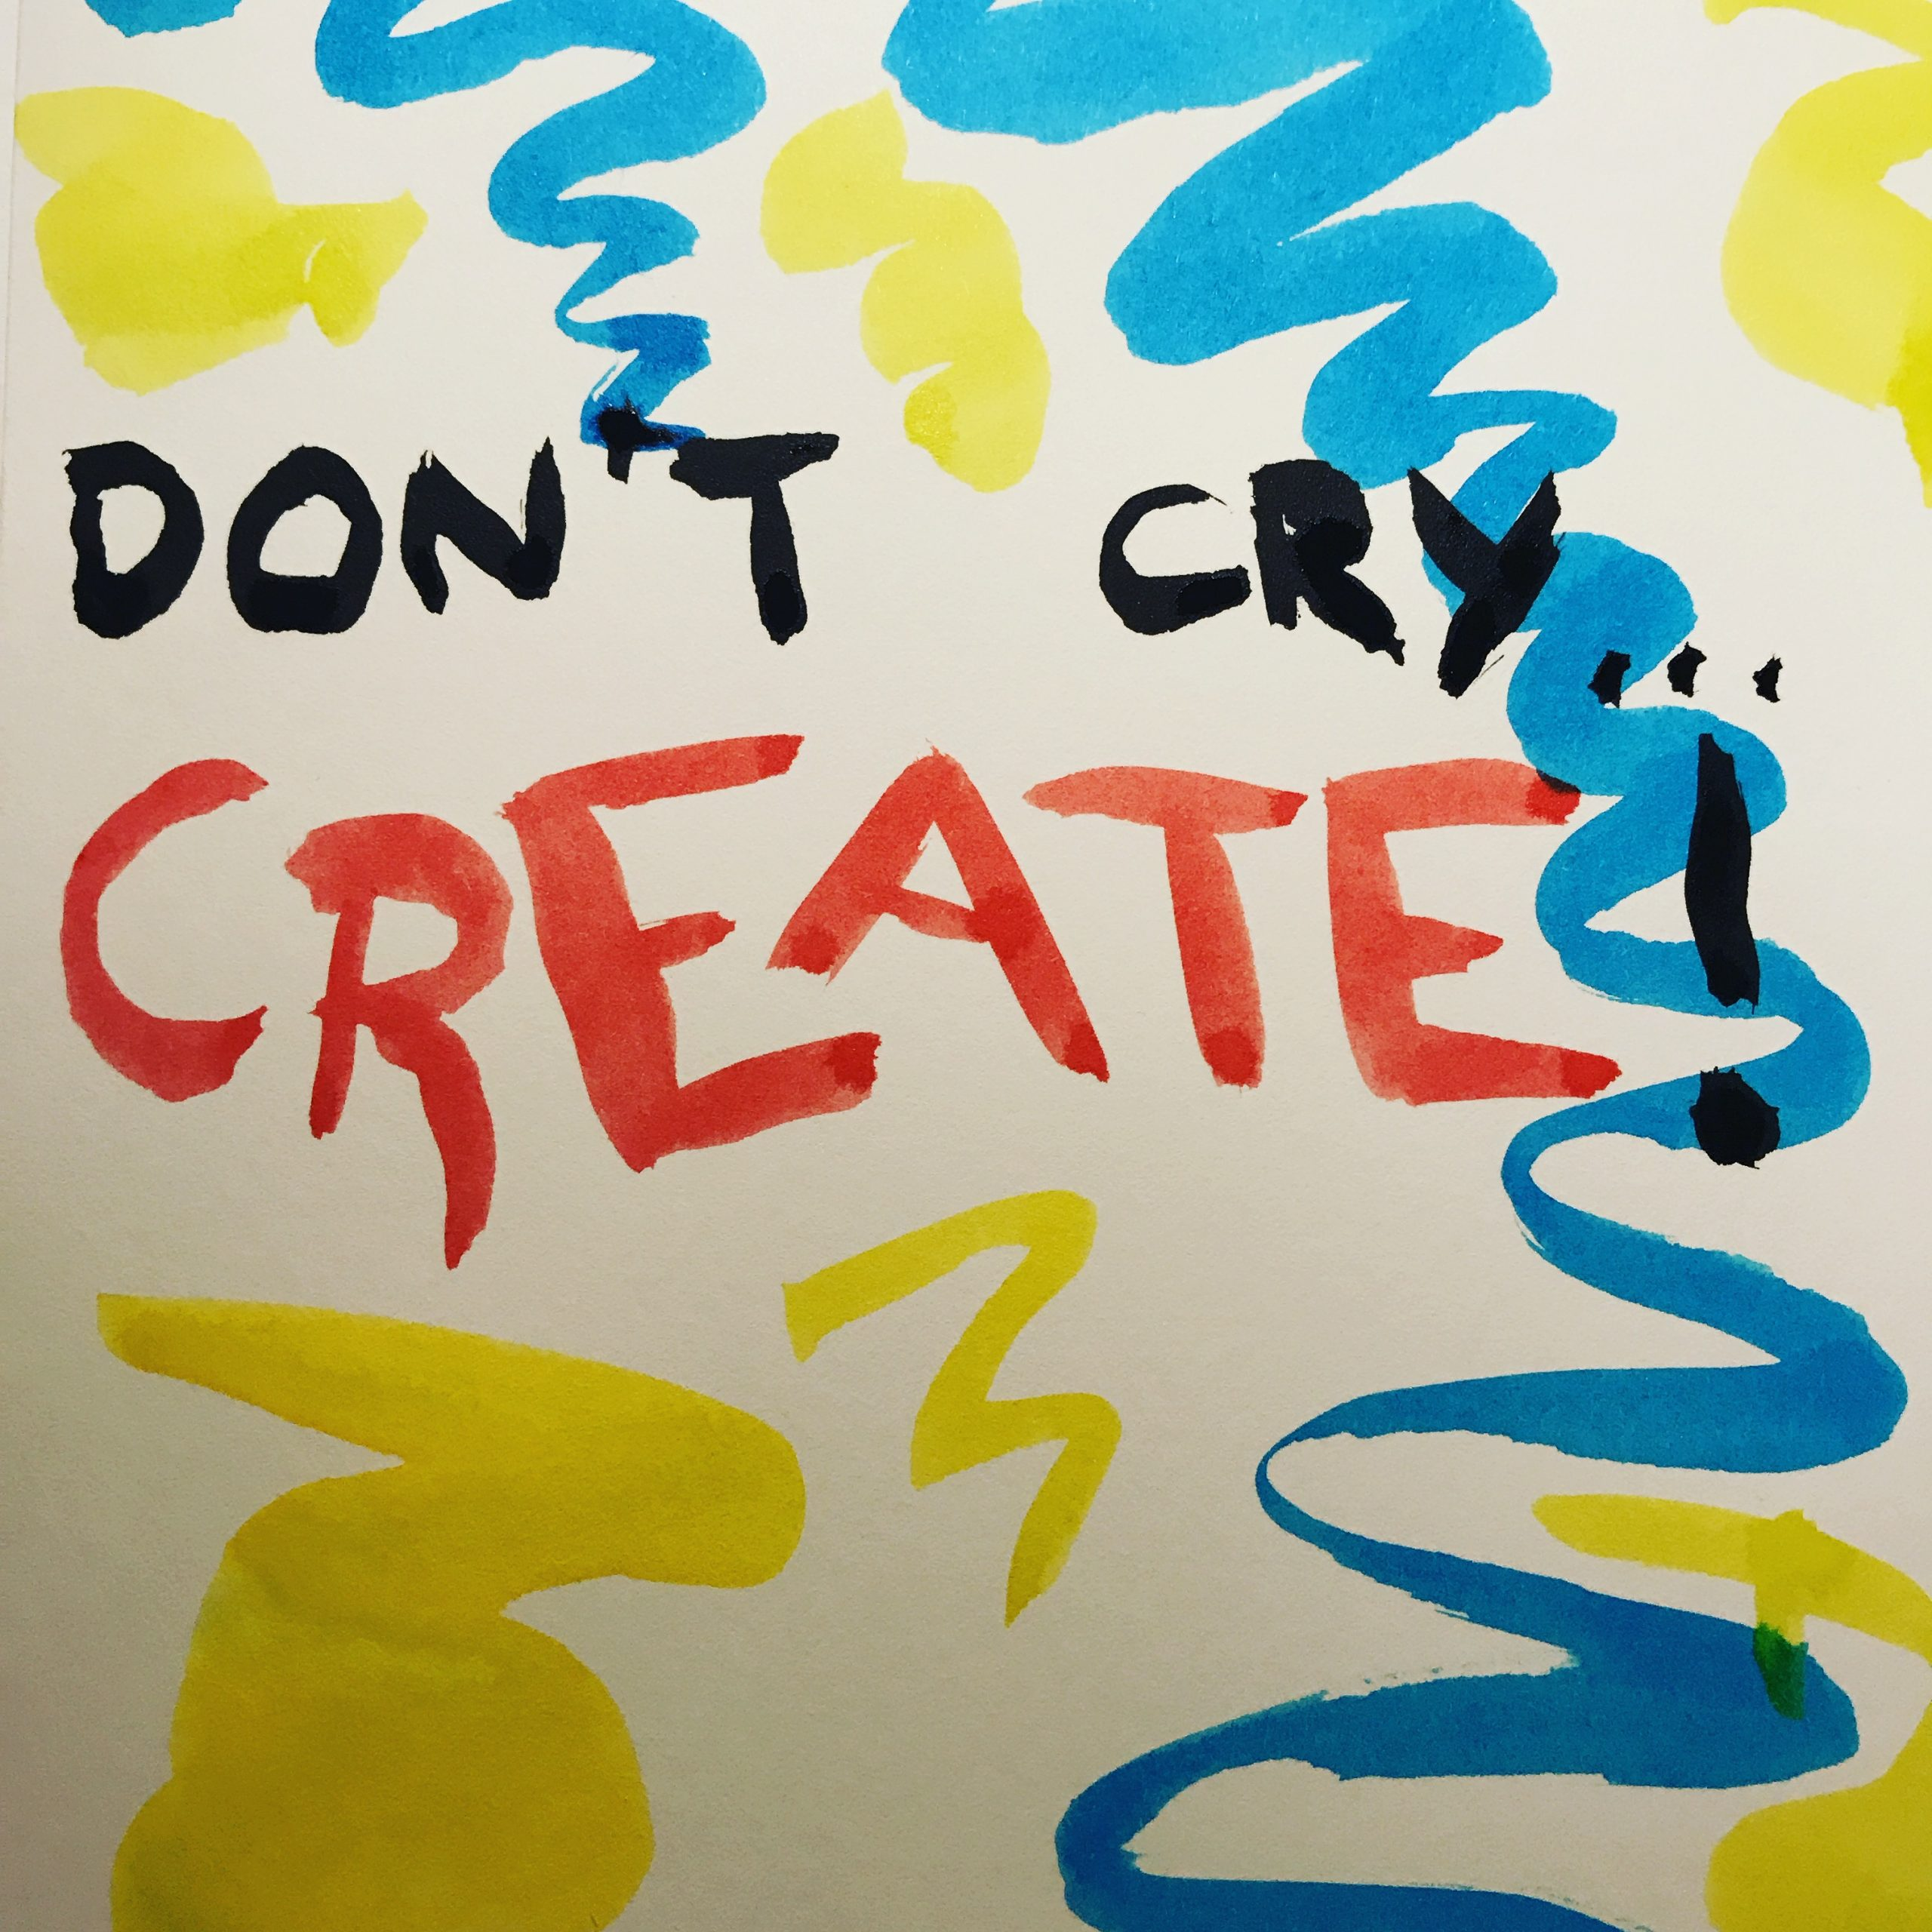 Don't cry… Create!